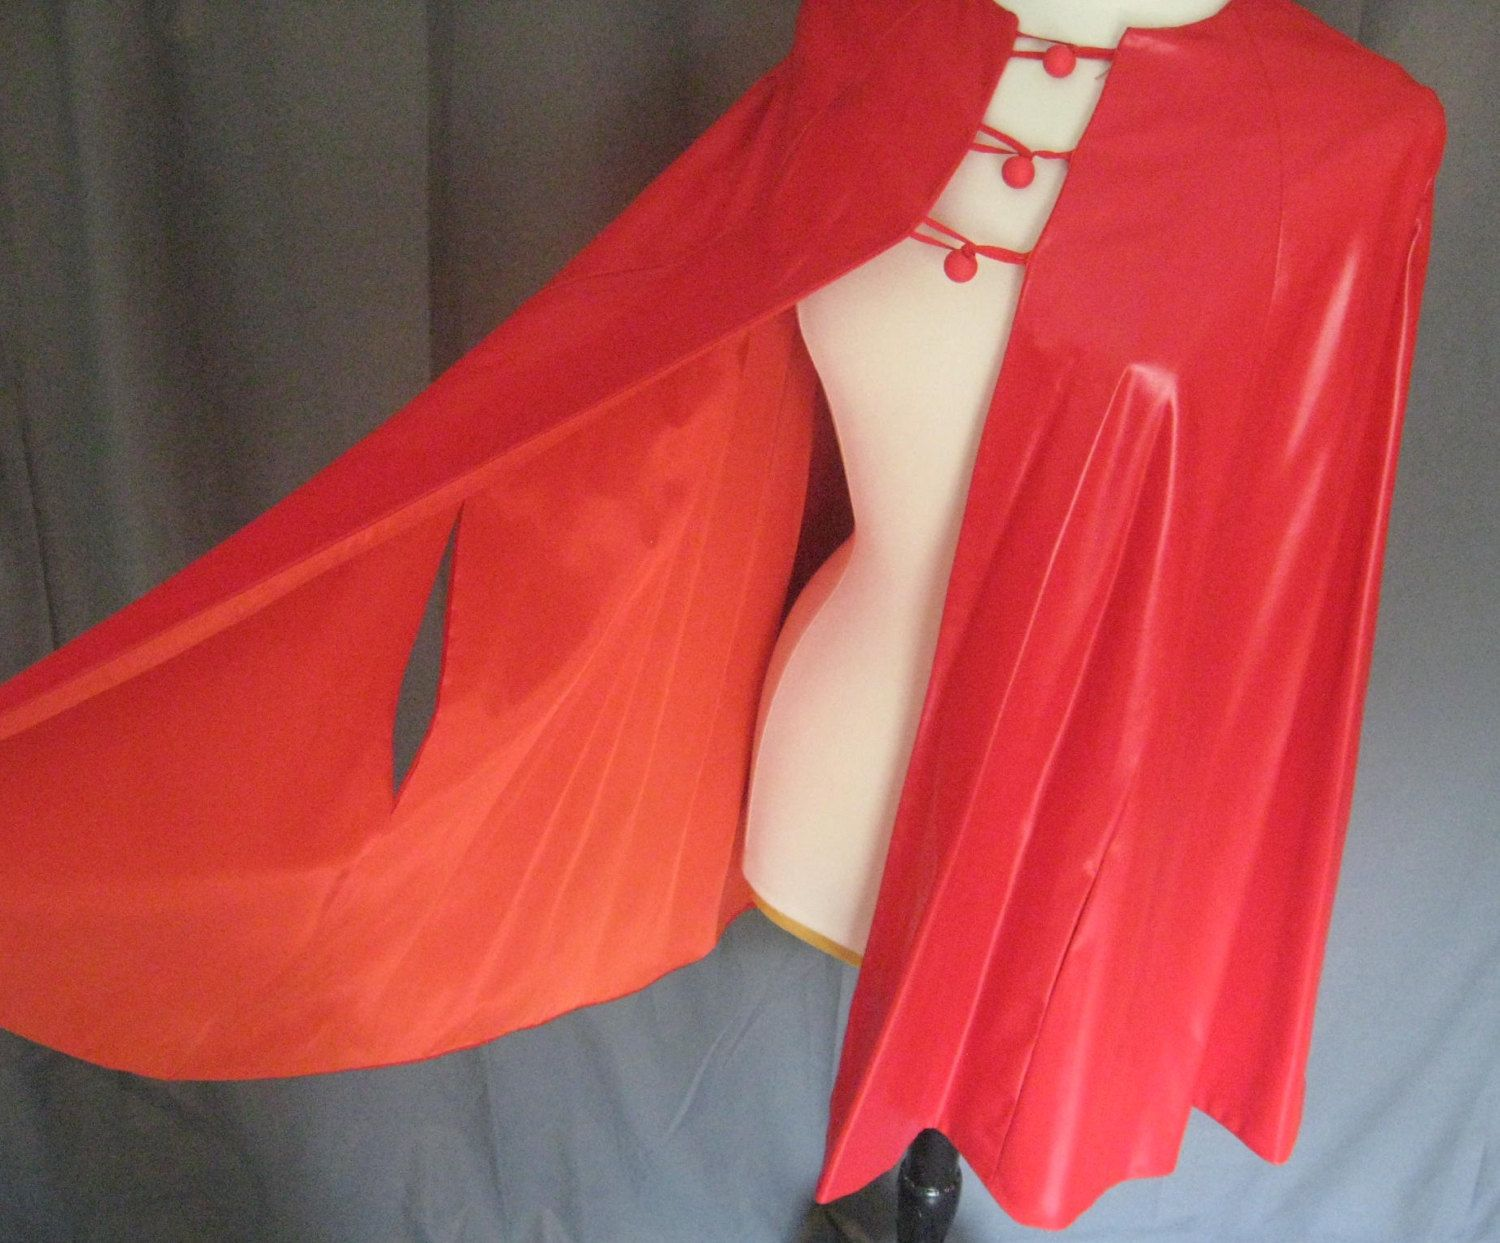 Vintage Red Devil's Cape 1960s or 1970s Luscious and by Vintage201, $25.00